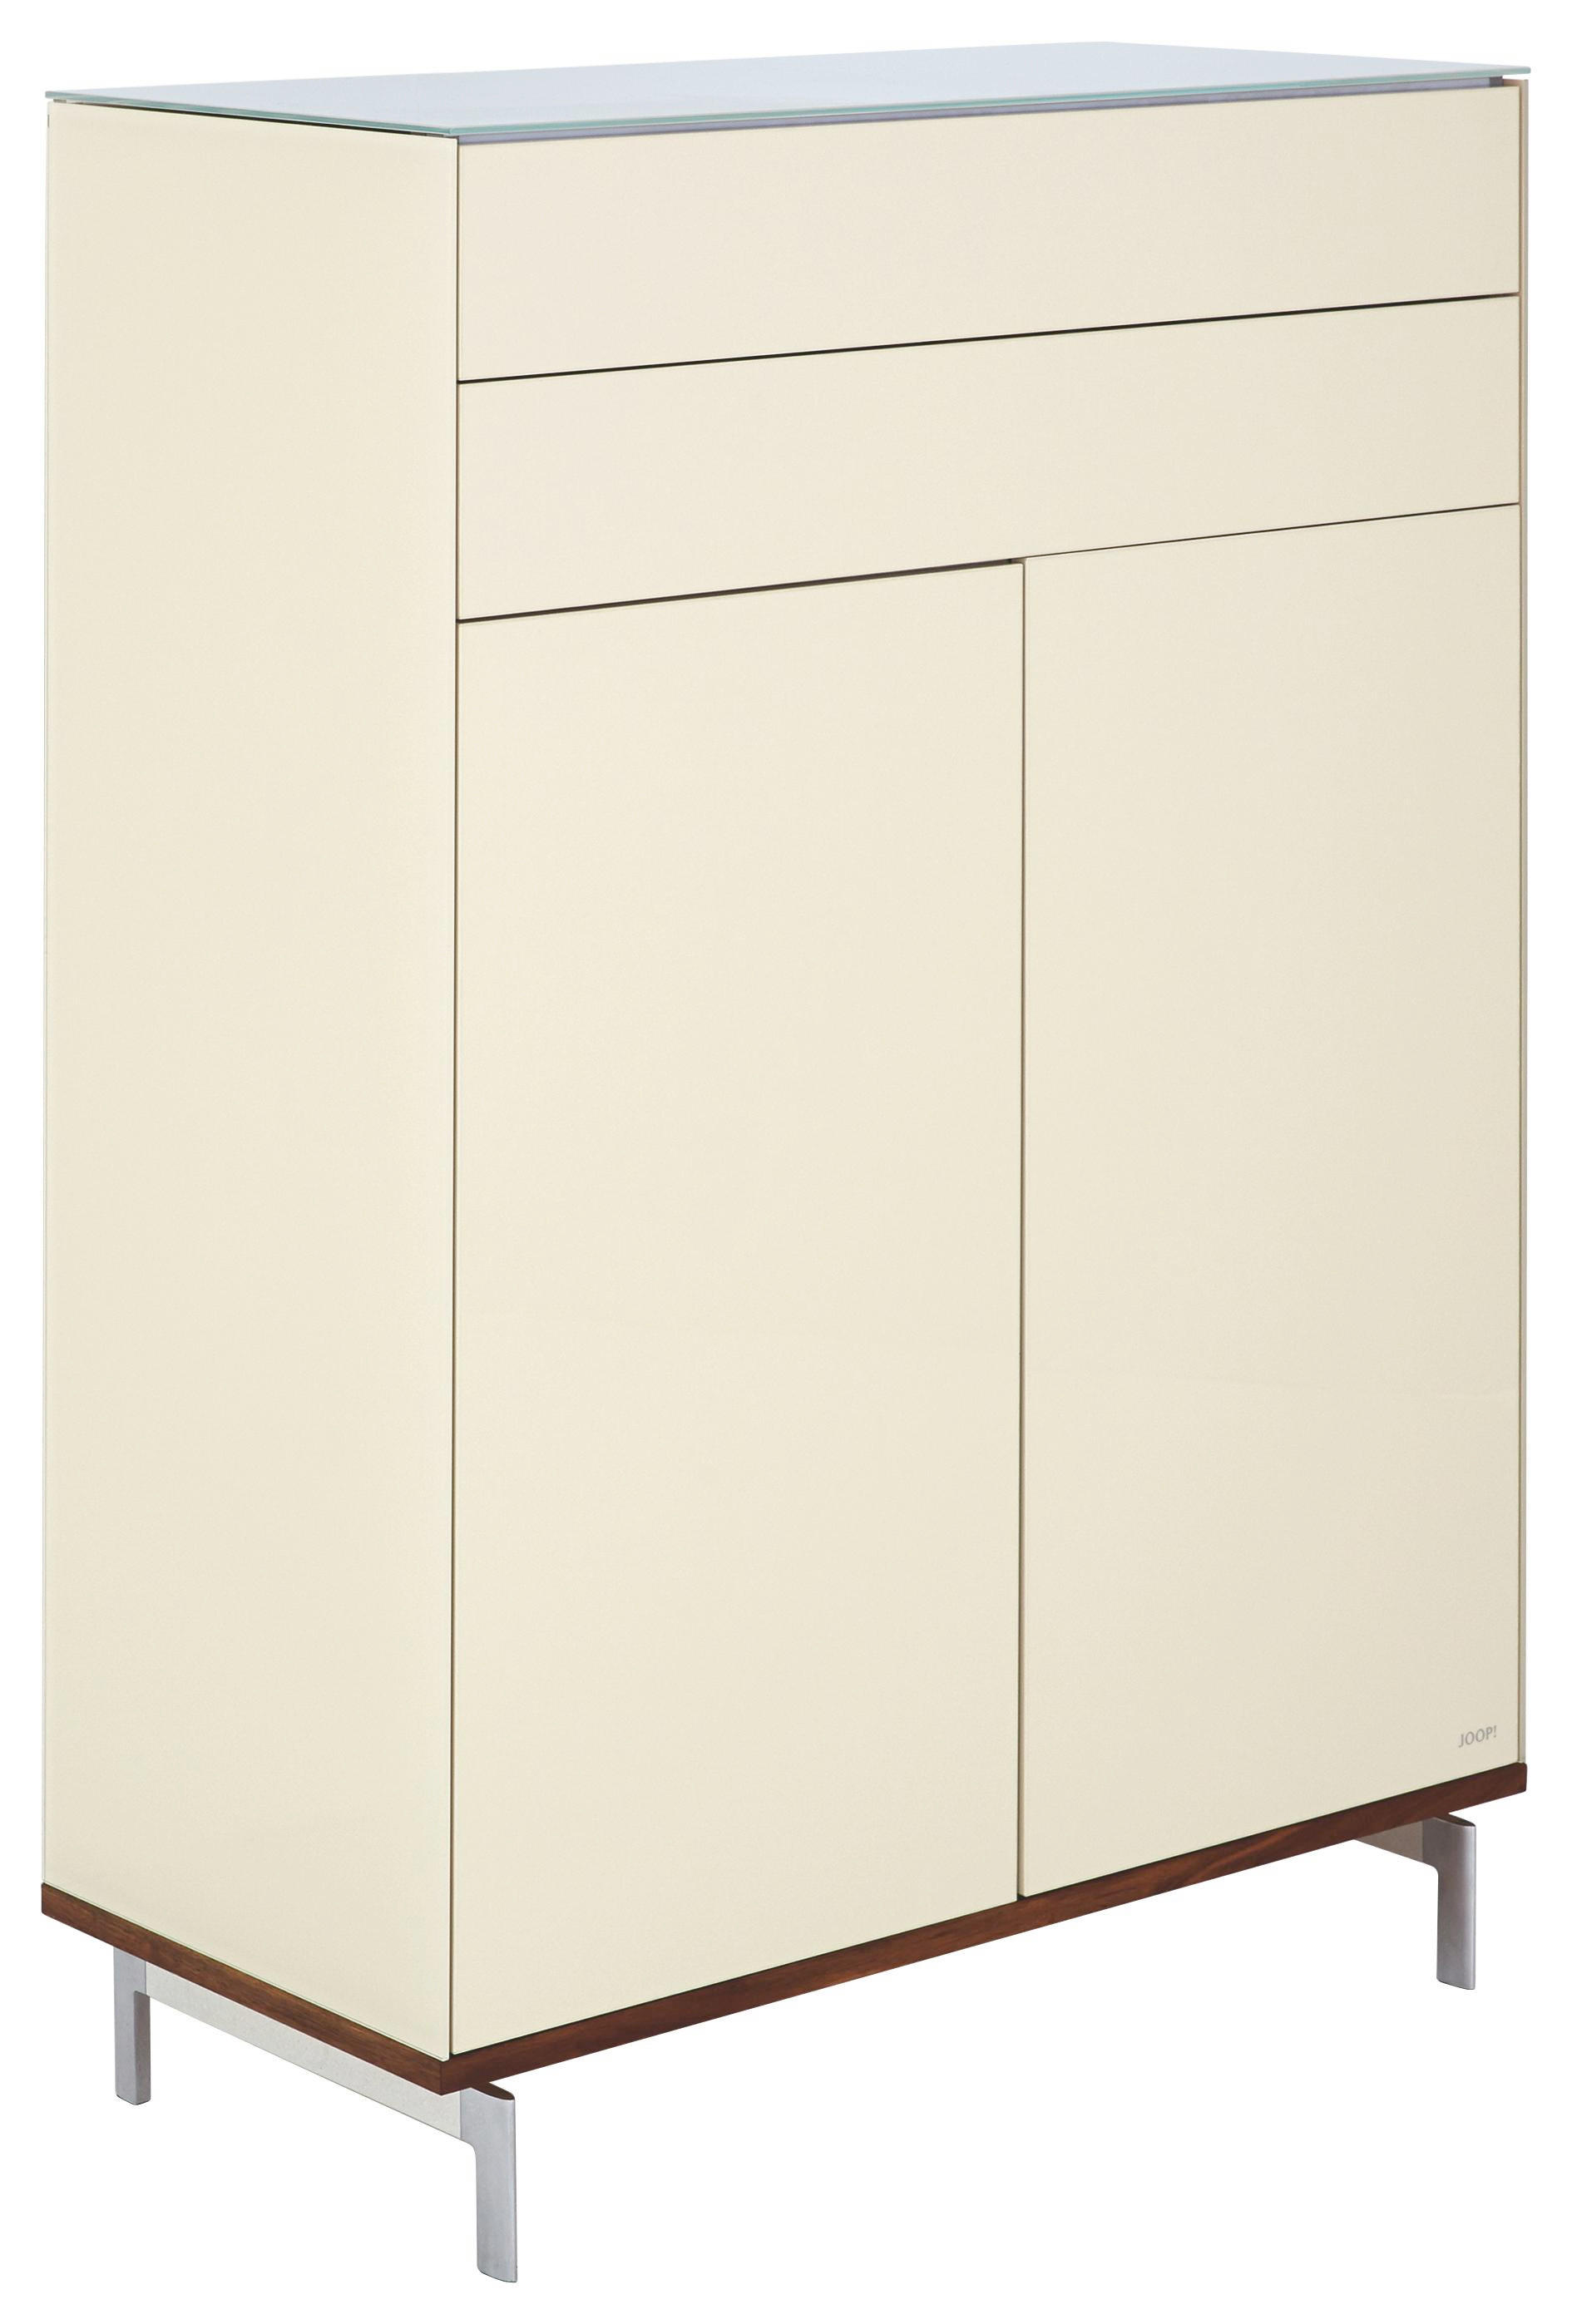 Küche Highboard Kaufen Highboard 102 151 46 Cm